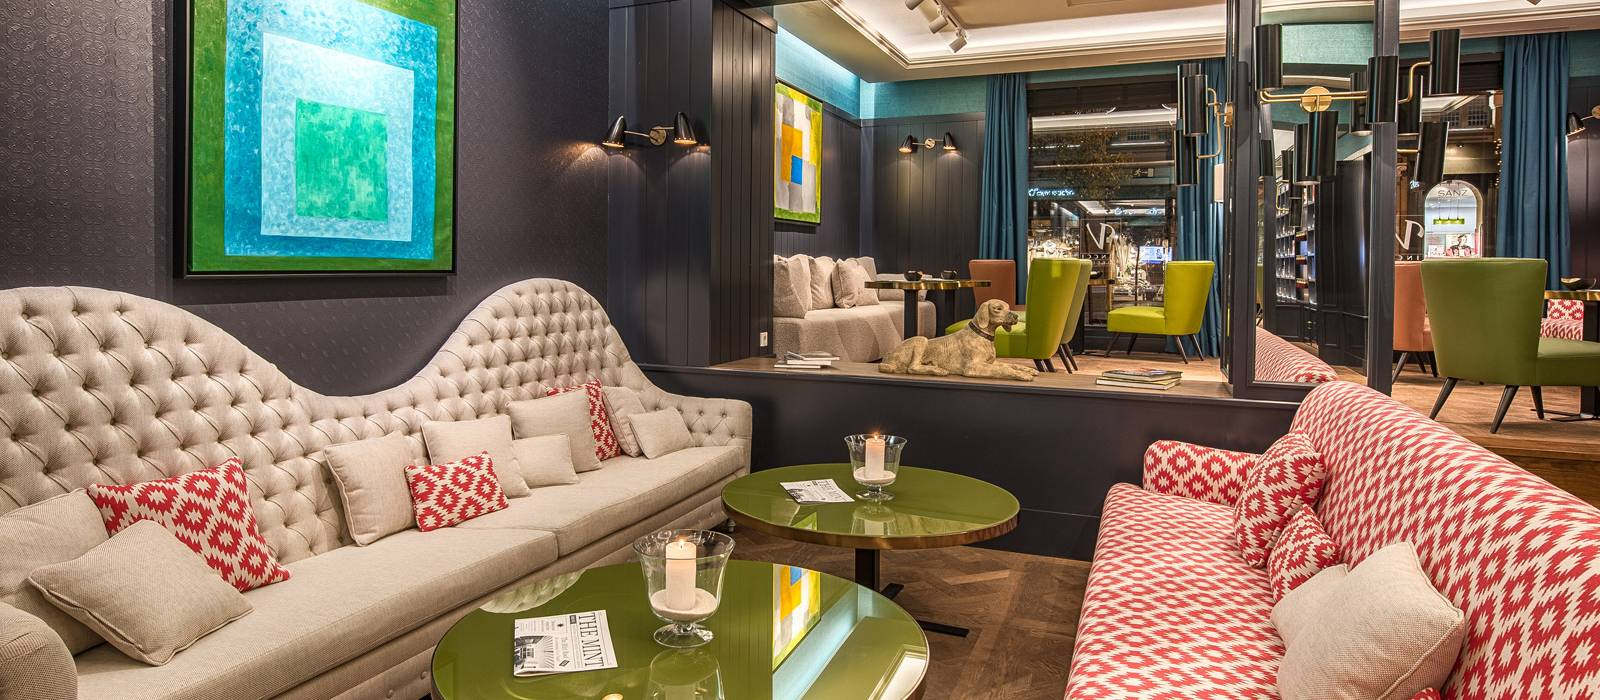 Gastro Bar - Vincci The Mint 4* - Madrid